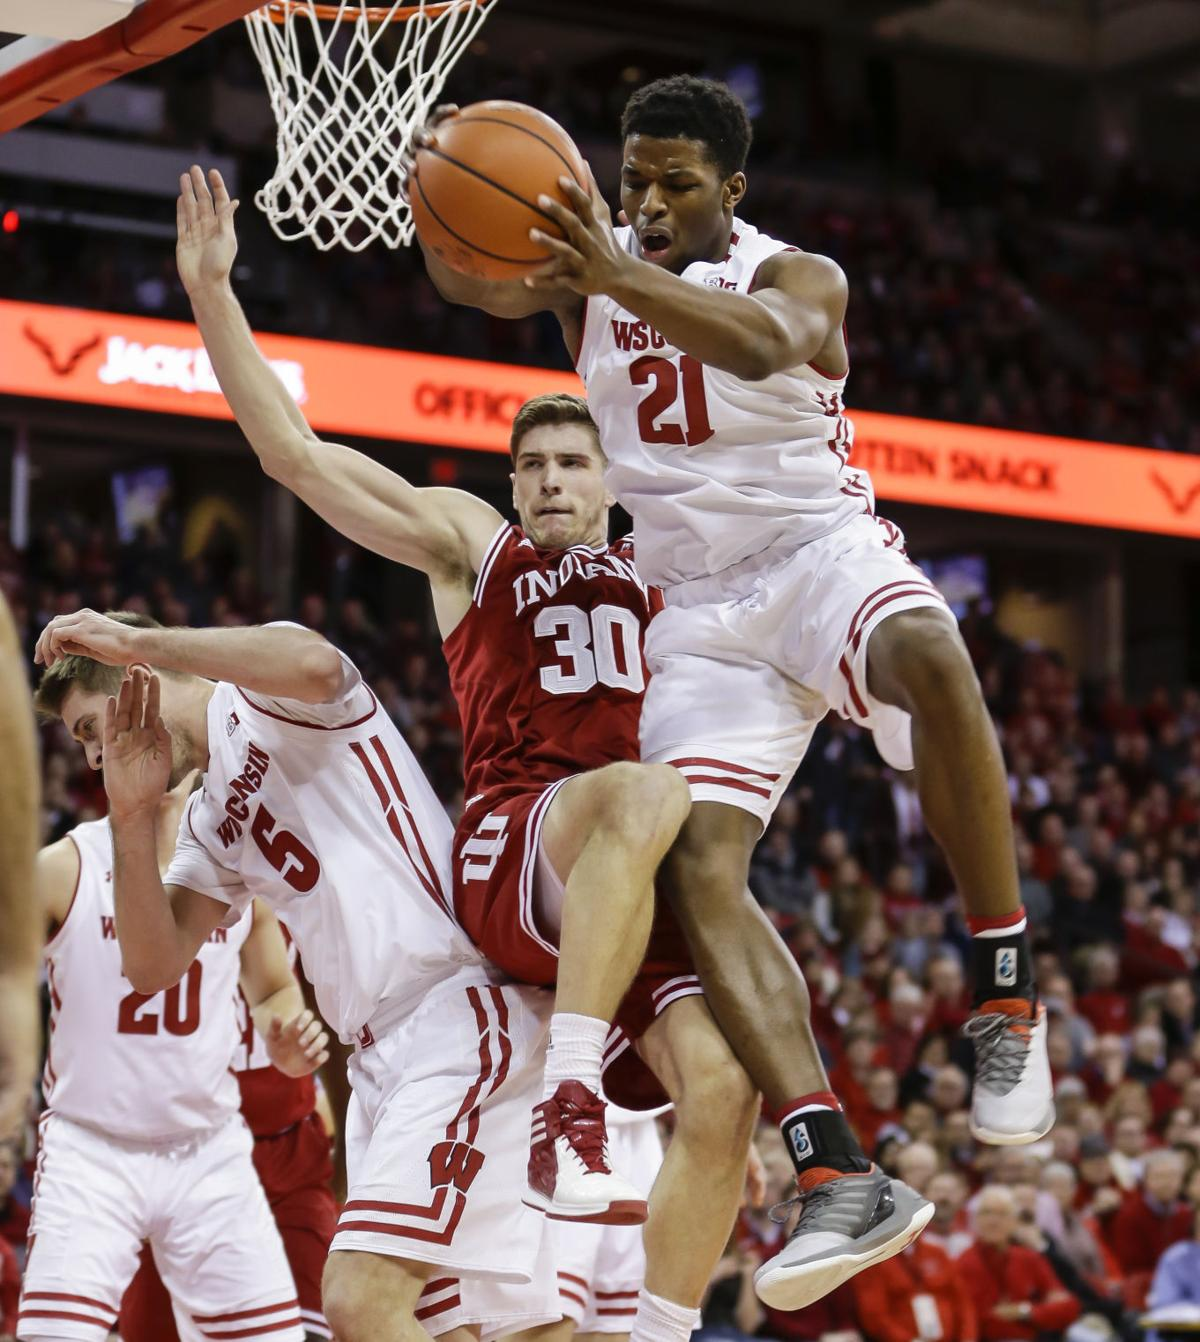 Indiana Wisconsin Basketball